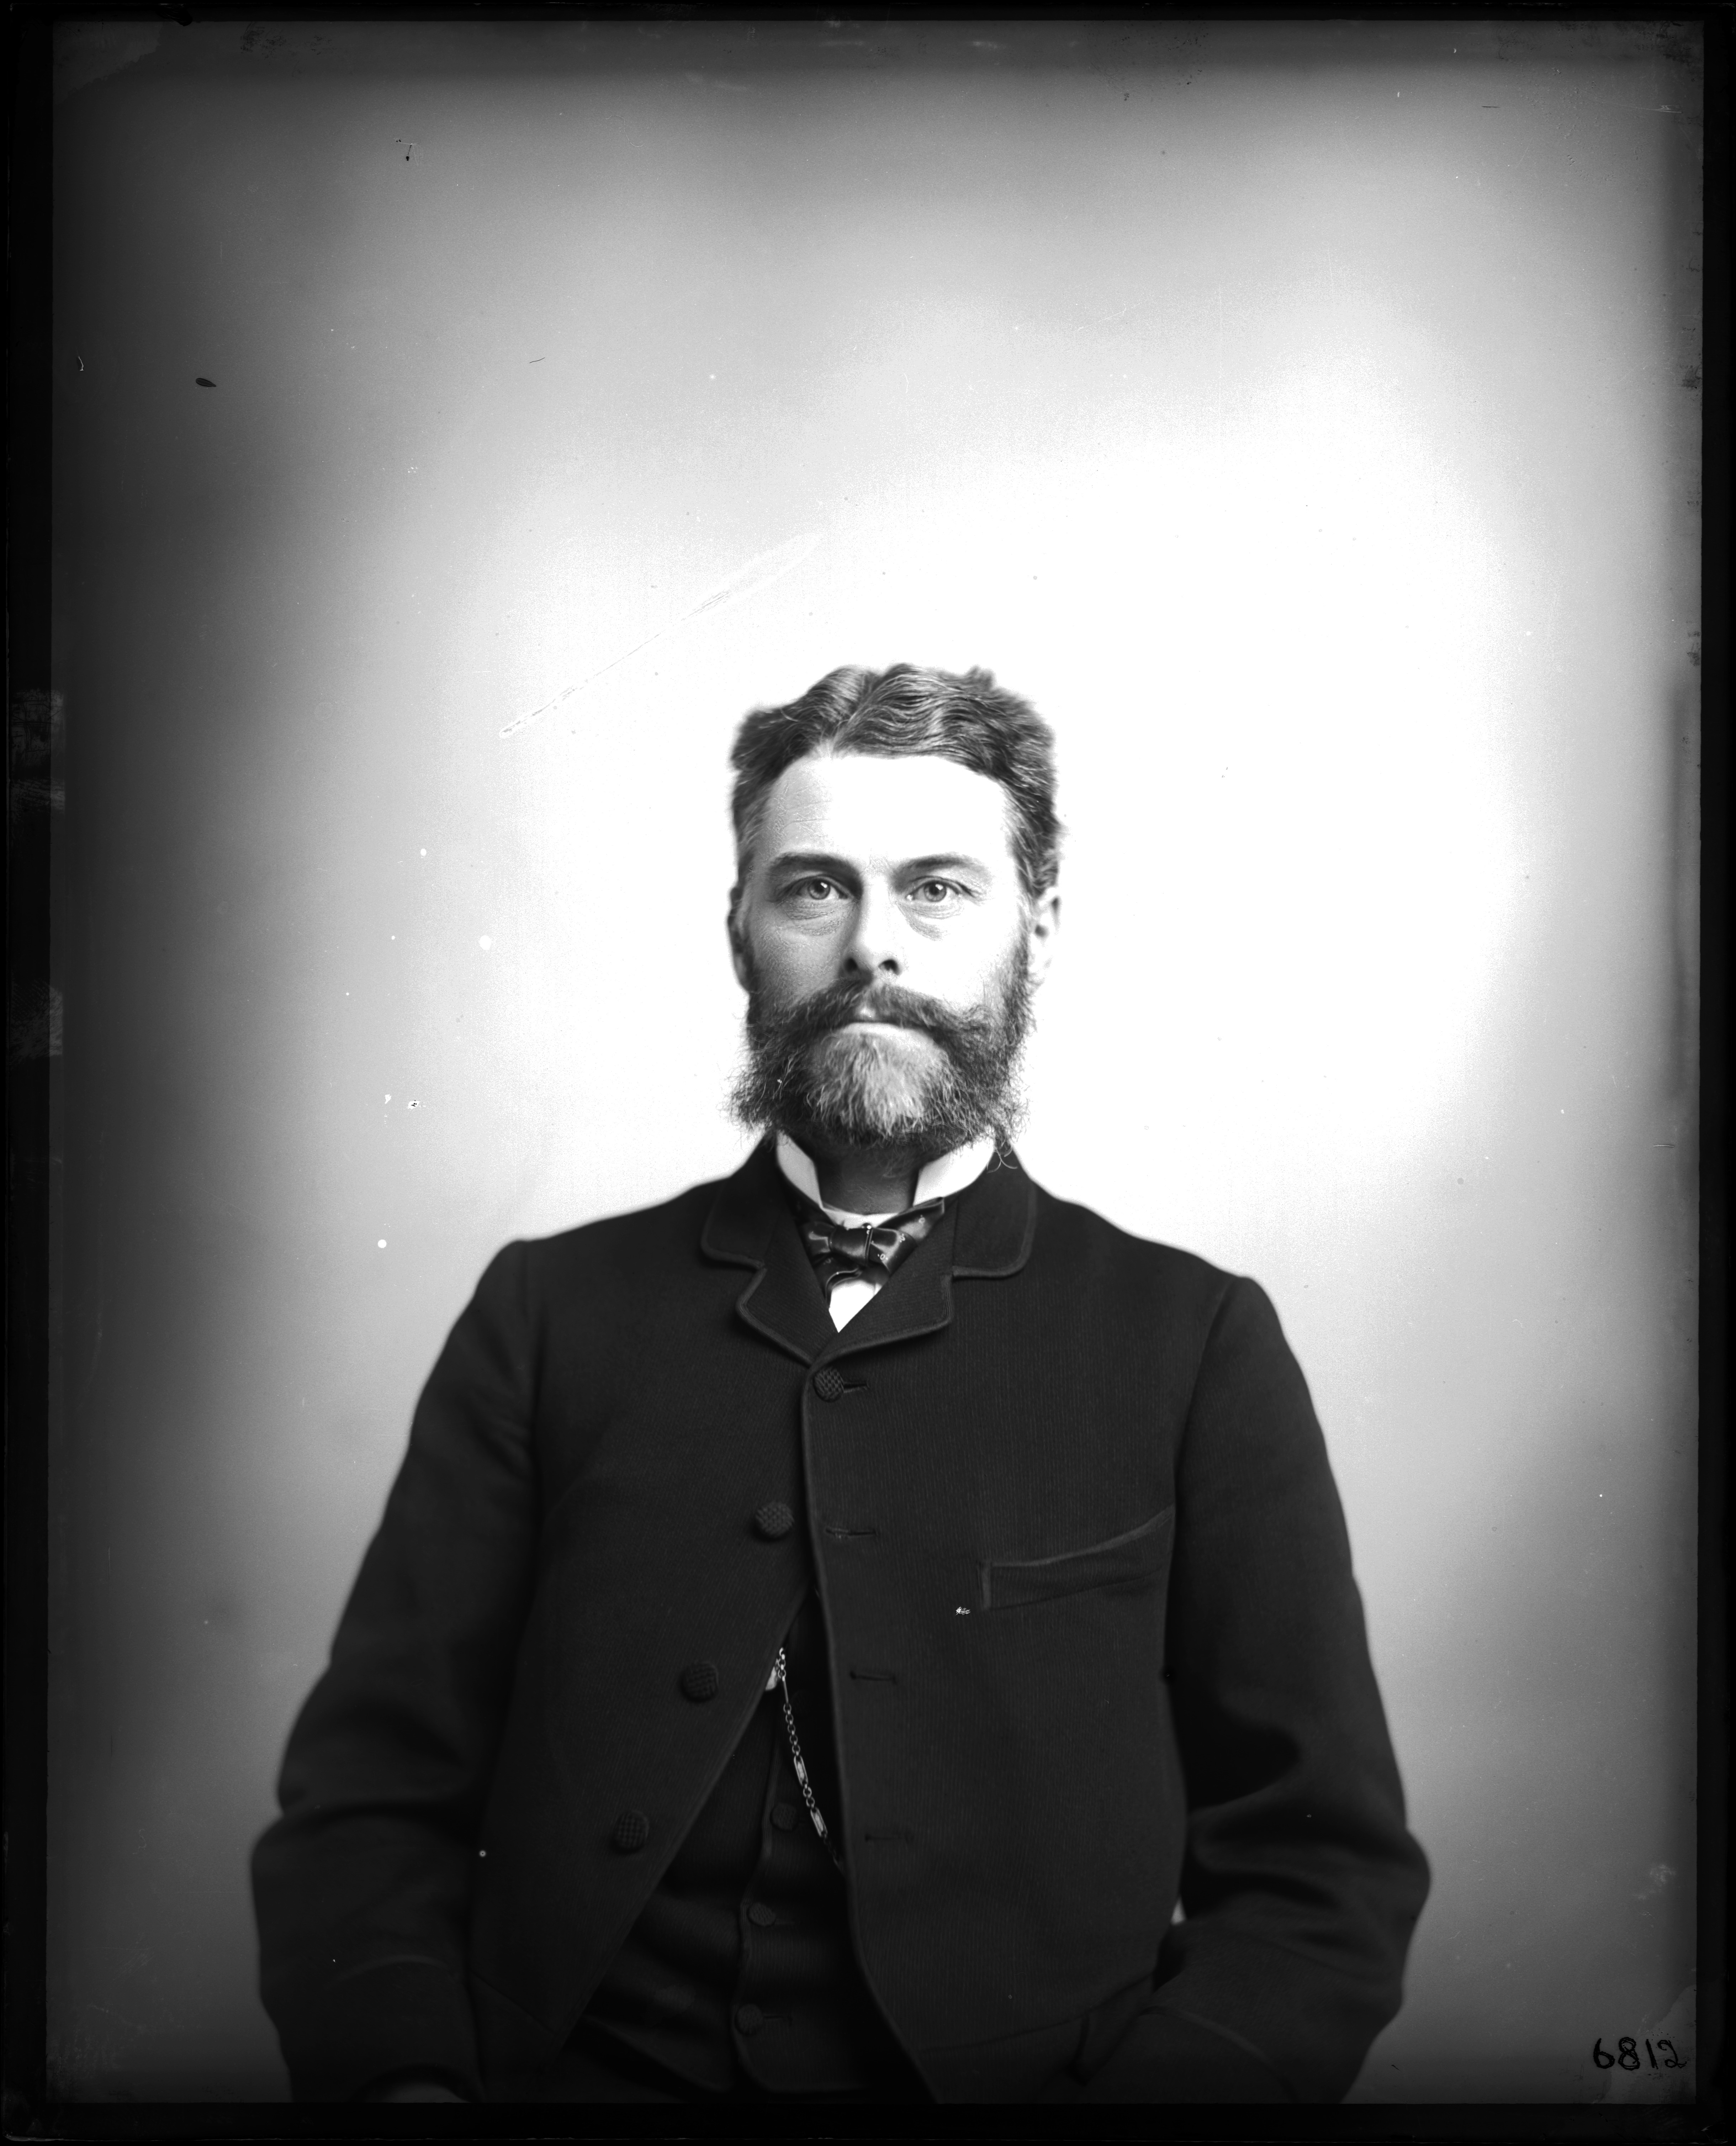 A man in a suit and bowtie stares directly into the camera. He has a beard.